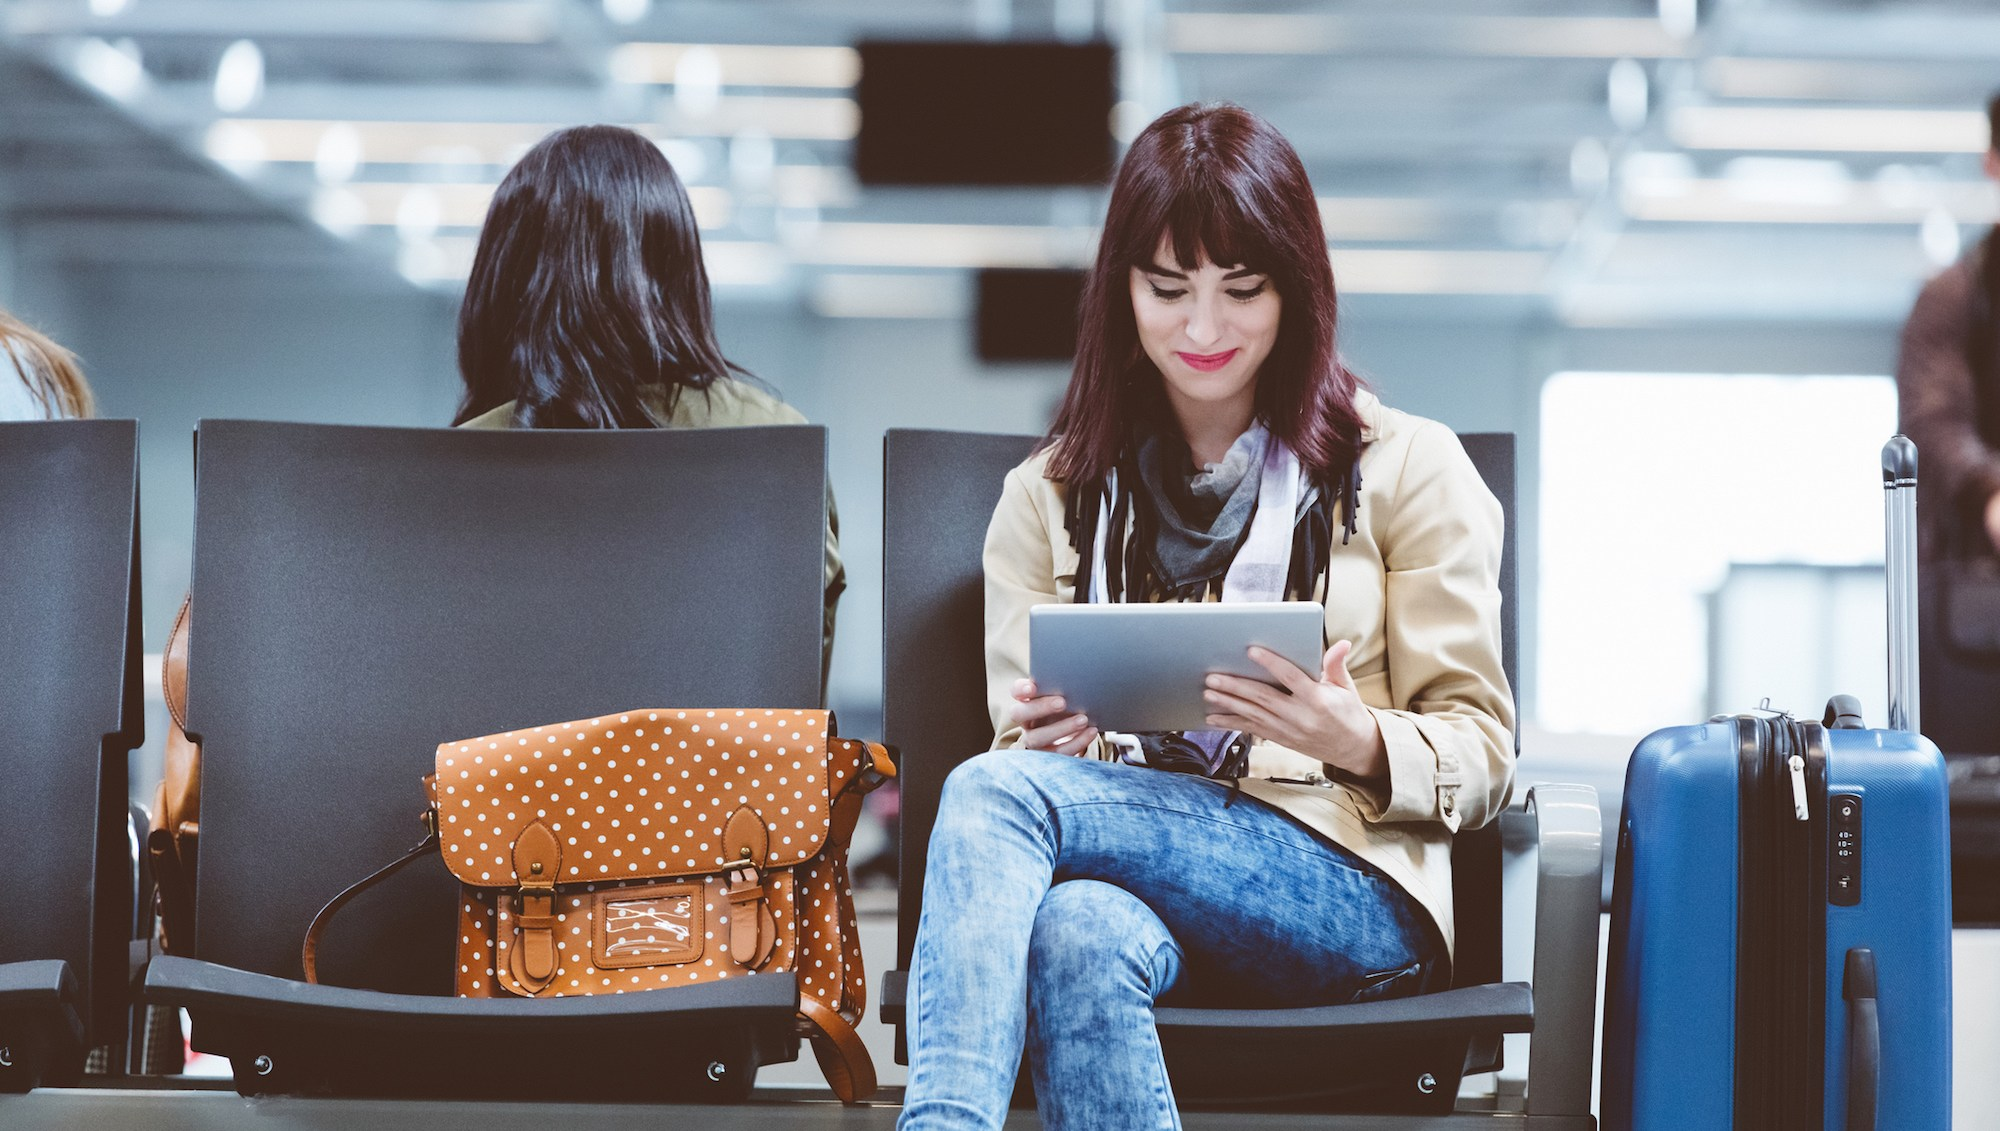 Young woman using tablet pc at airport